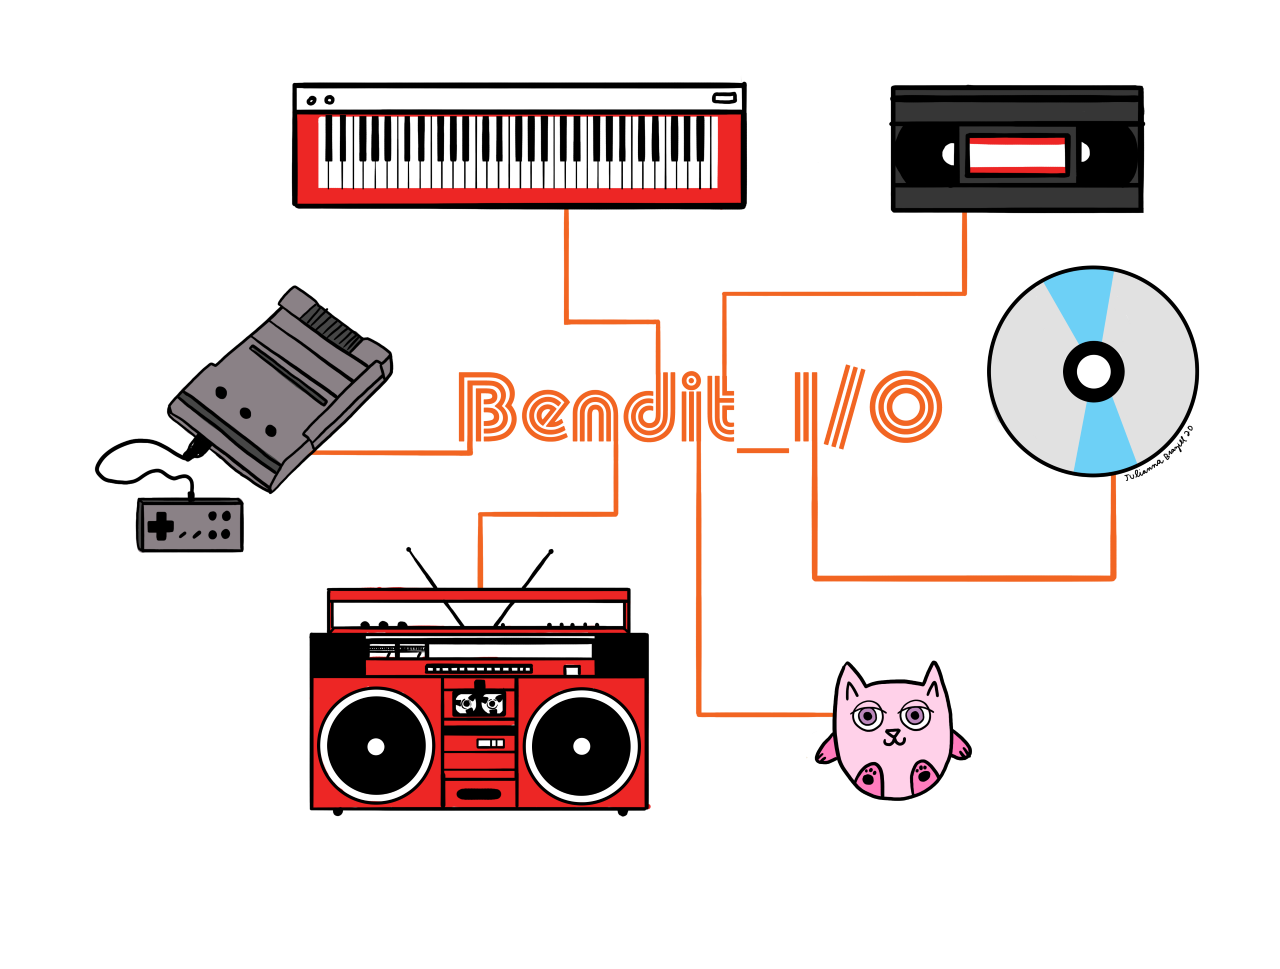 Bendit I/O logo featuring a network diagram of musical and other devices